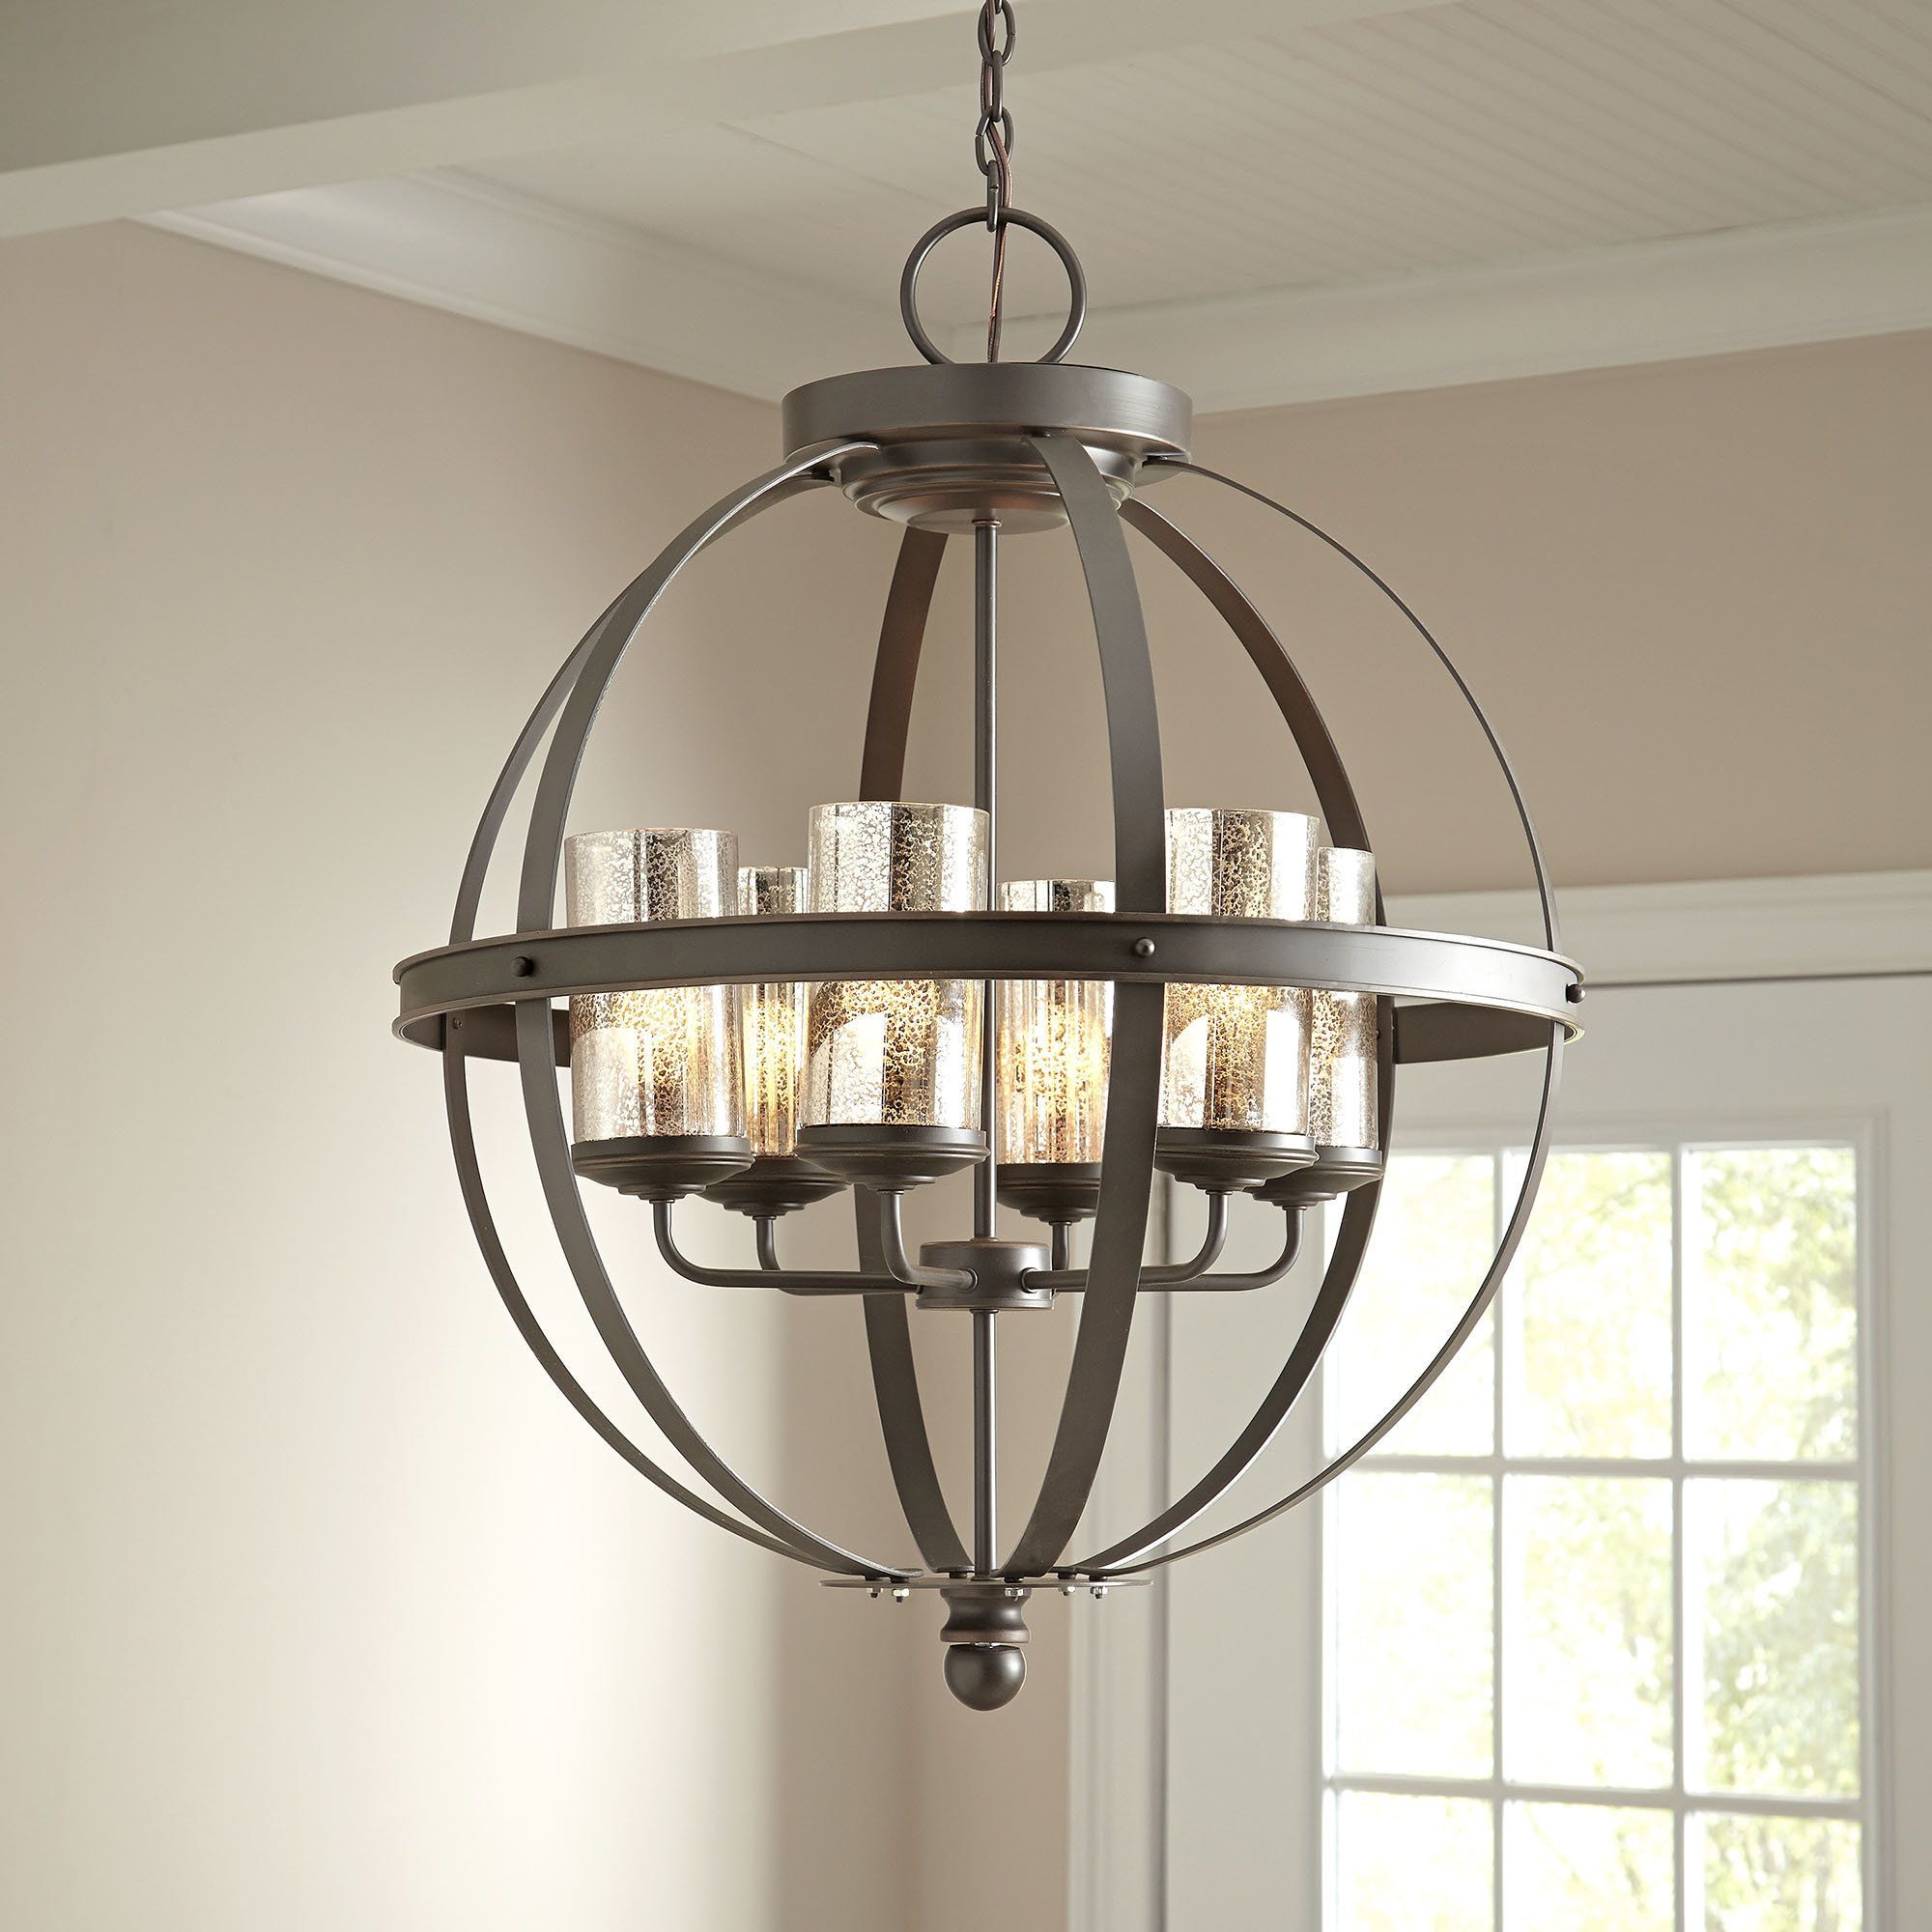 Donna 6 Light Globe Chandelier Pertaining To Donna 4 Light Globe Chandeliers (Photo 7 of 30)